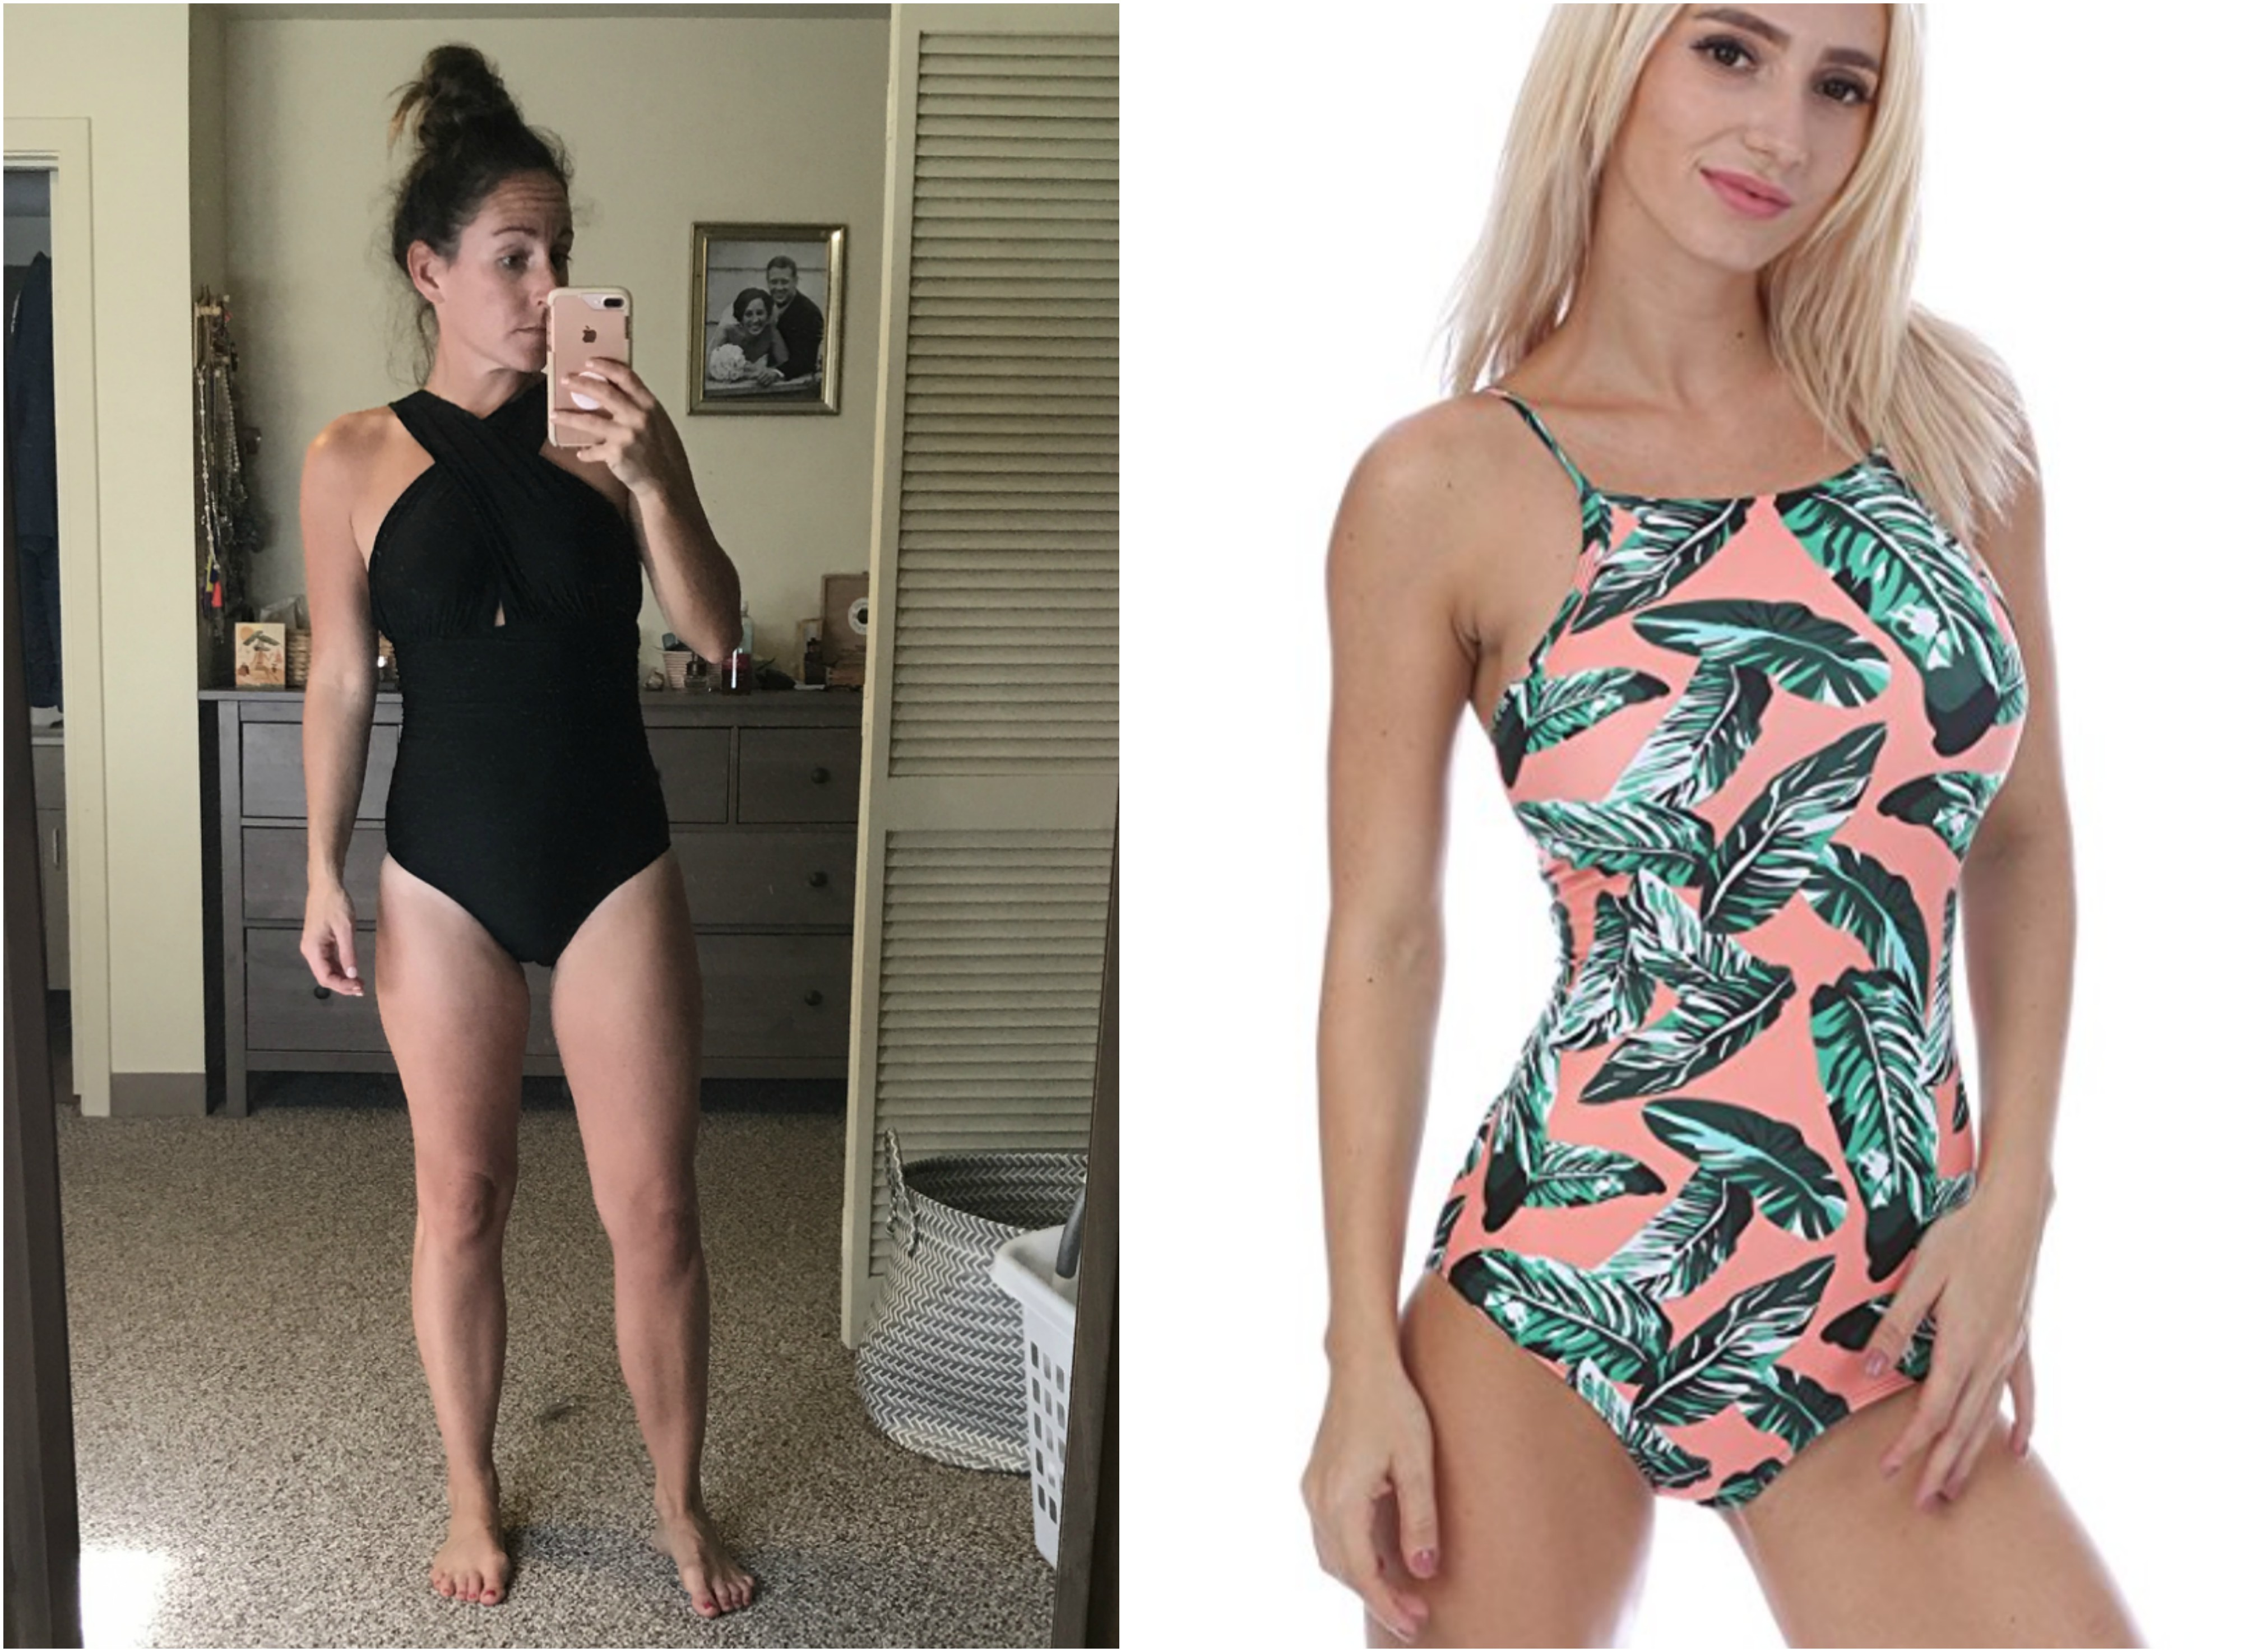 Amazon - The Best Places To Buy Swimsuits - Summer Swimwear - Best Swimwear - Best Swimwear To Buy Online - Flattering Swimsuits Guide - Communikait by Kait Hanson